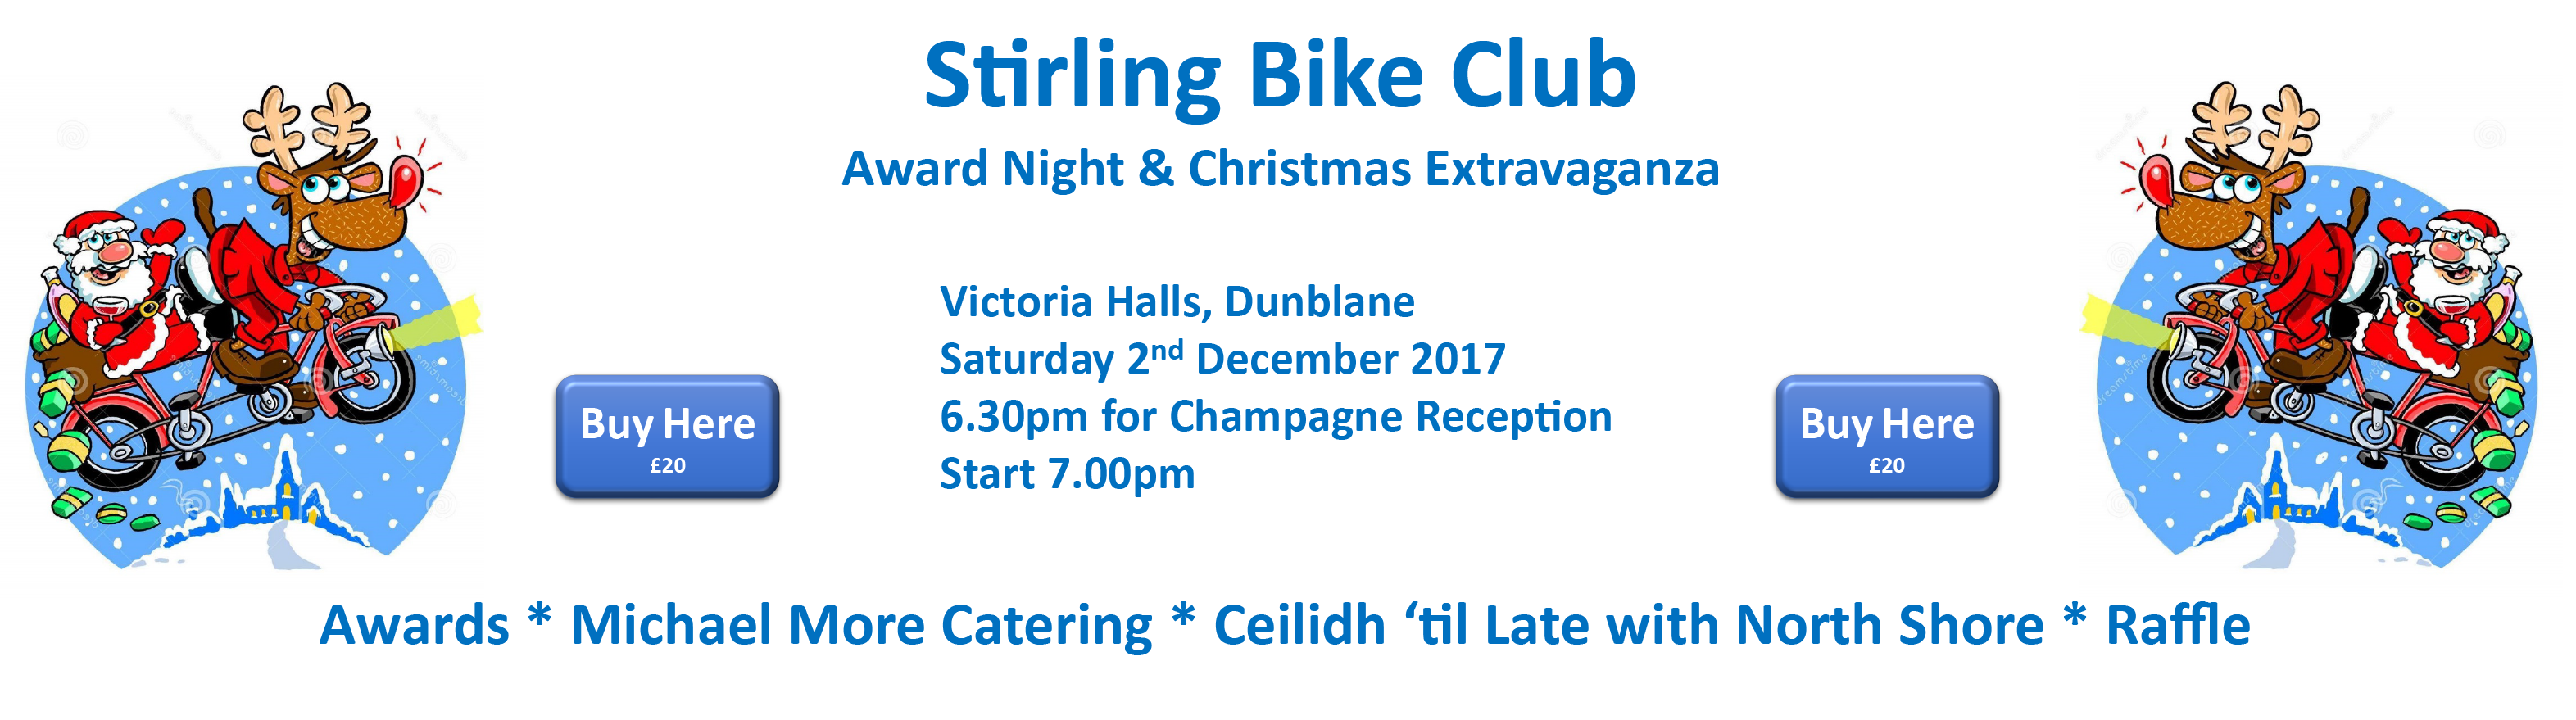 Club Christmas Awards and Bash